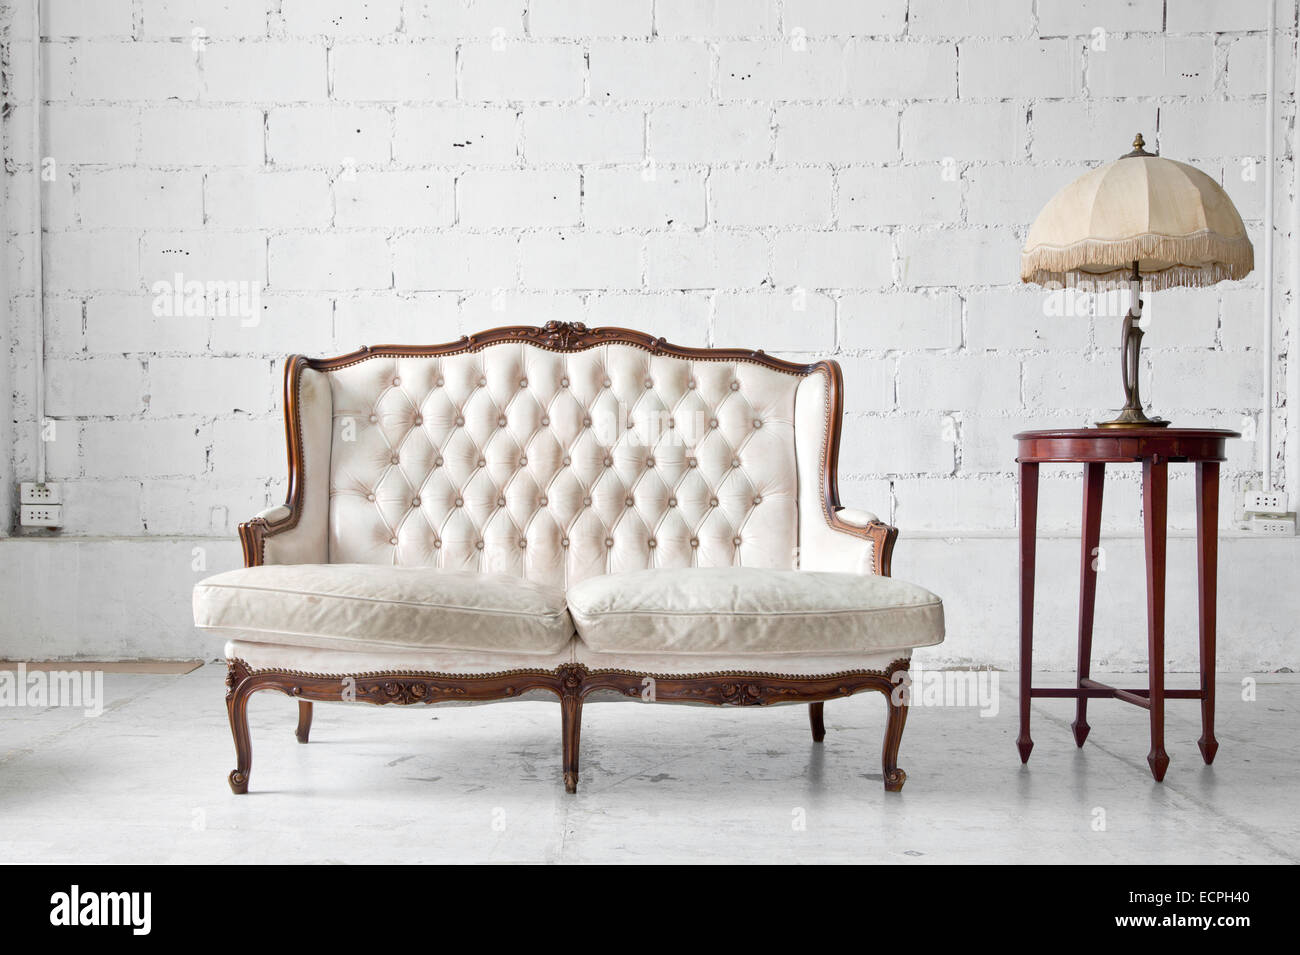 White genuine leather classical style sofa in vintage room with desk